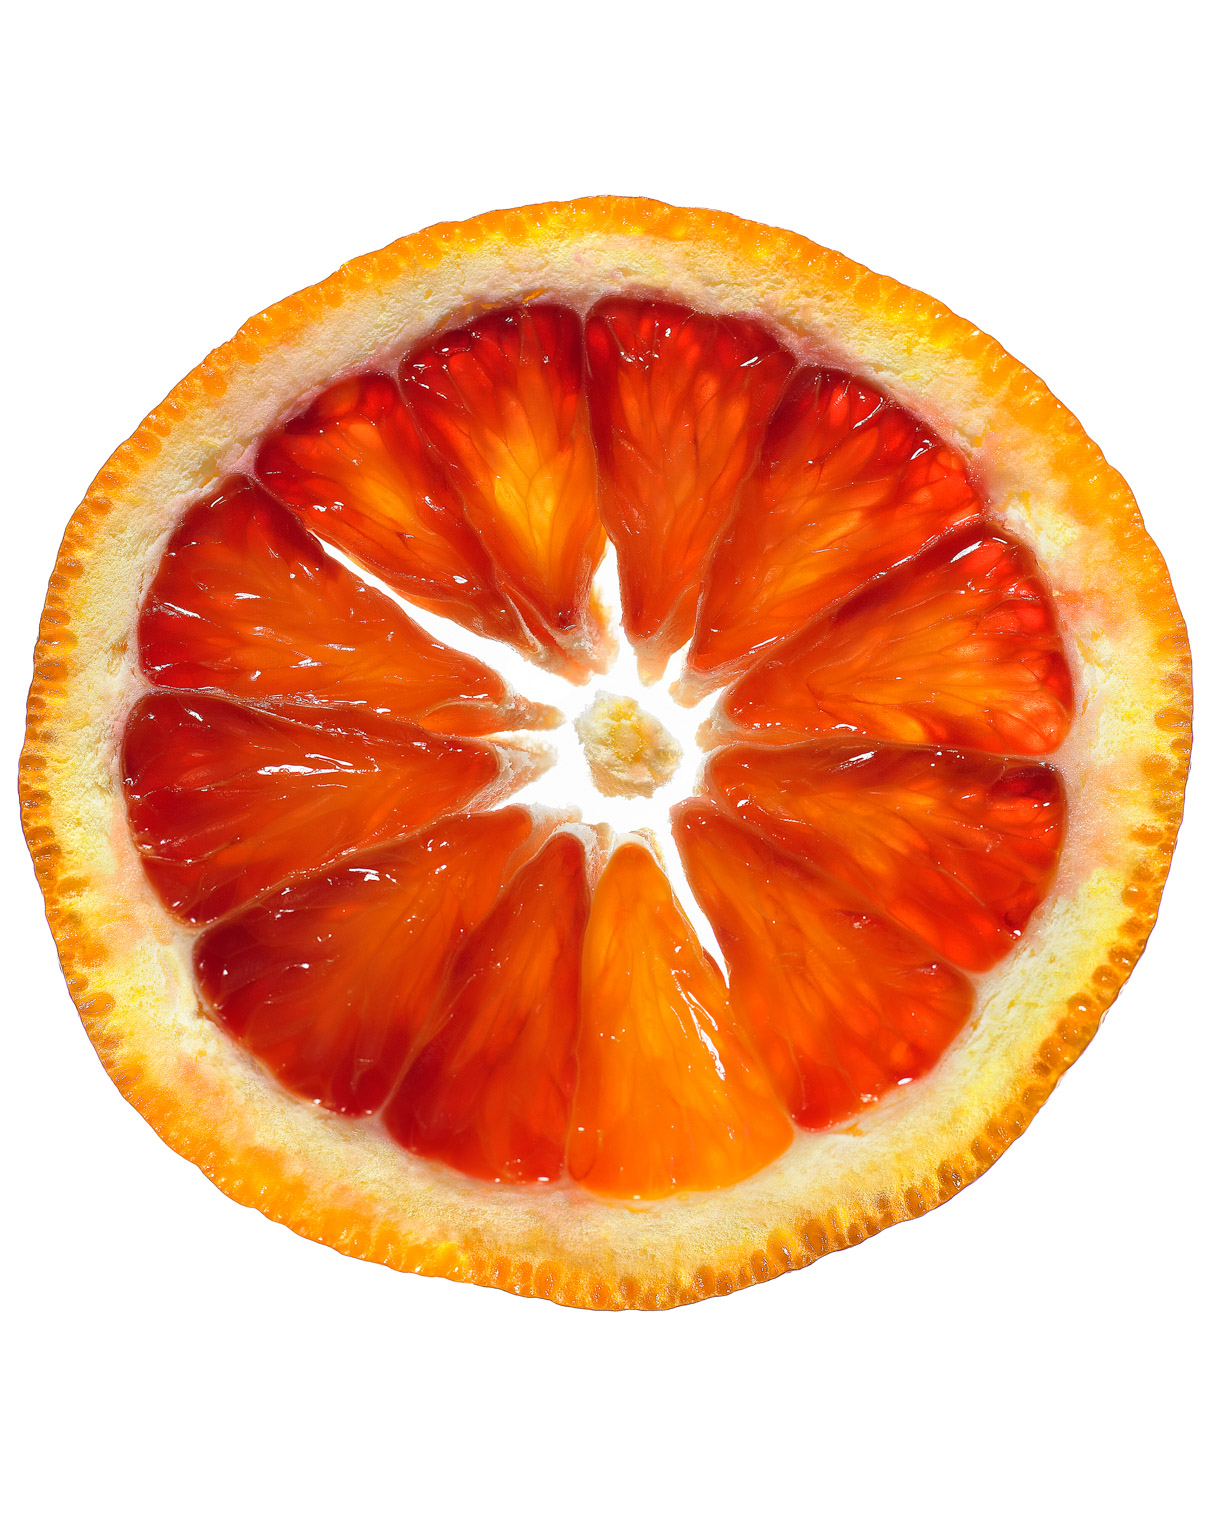 525_blood_oranges_007f